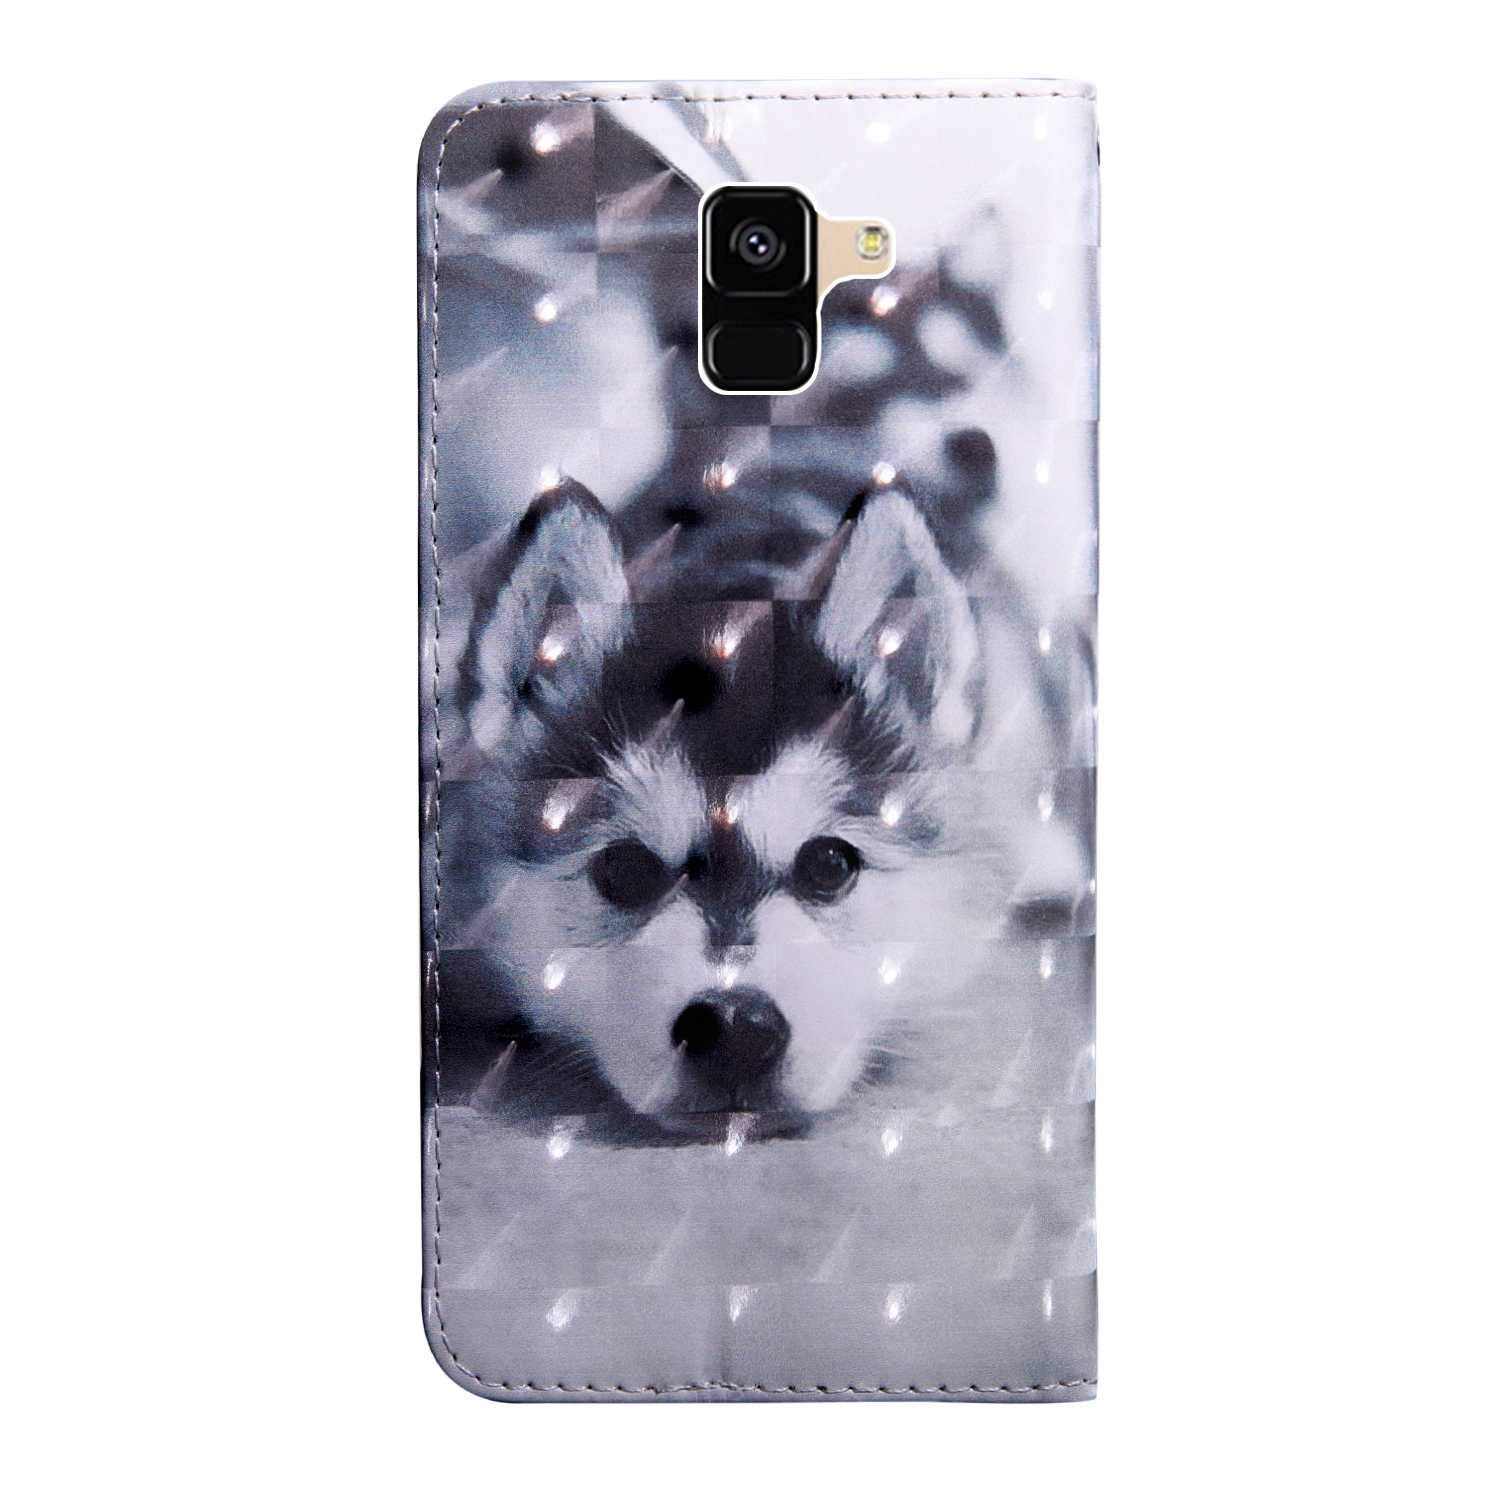 #6 Wolf 3D Pattern Design Wallet Flip Case for Samsung Galaxy A8 2018 Bear Village Galaxy A8 2018 Case PU Leather Book Style Cover with Card Slots